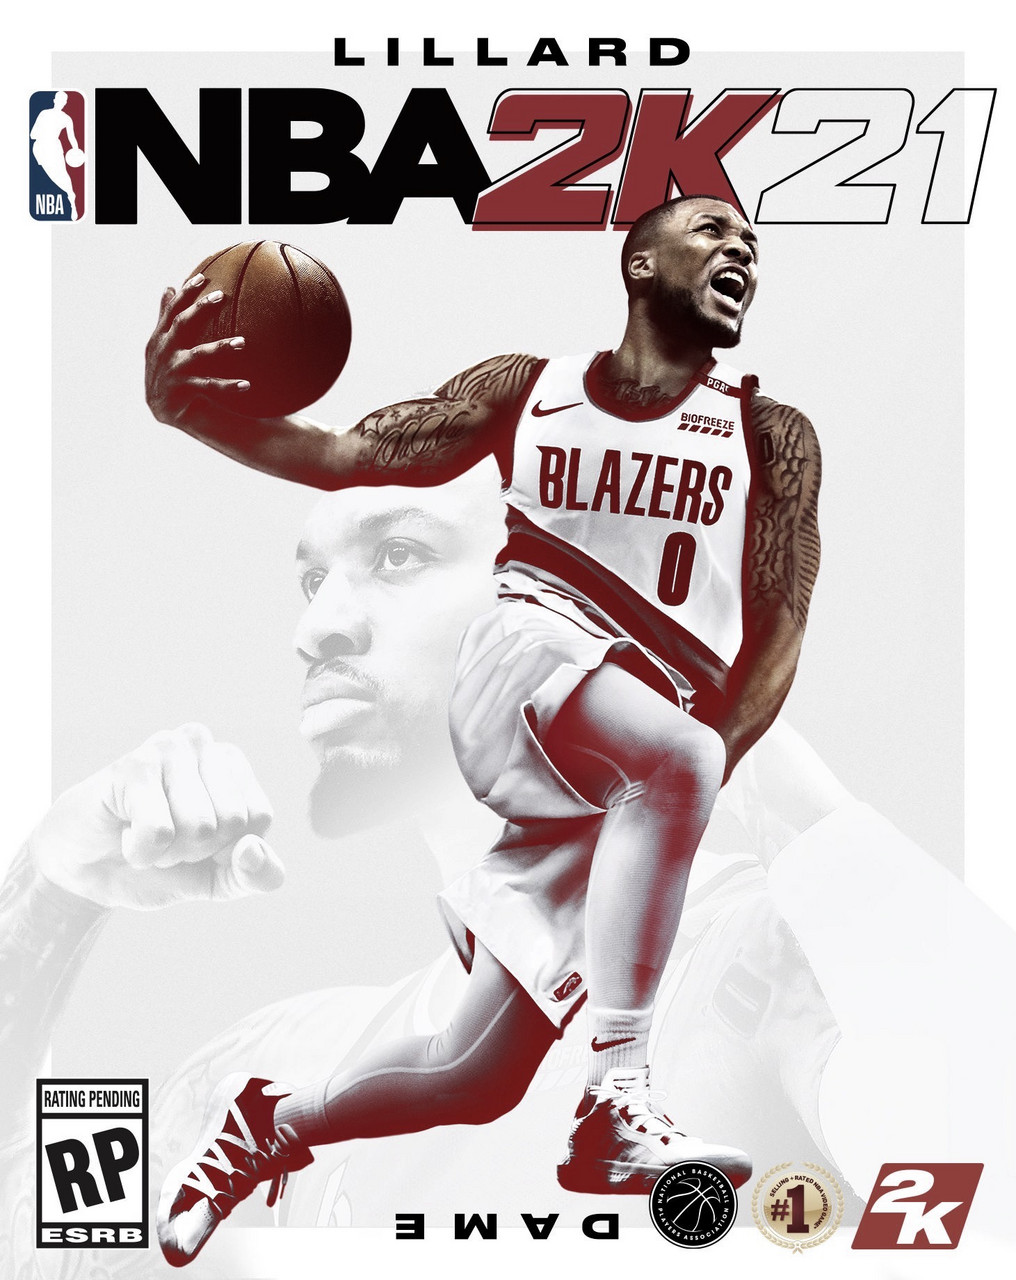 Damian Lillard Will Be on the Cover of 'NBA 2K21' This Fall